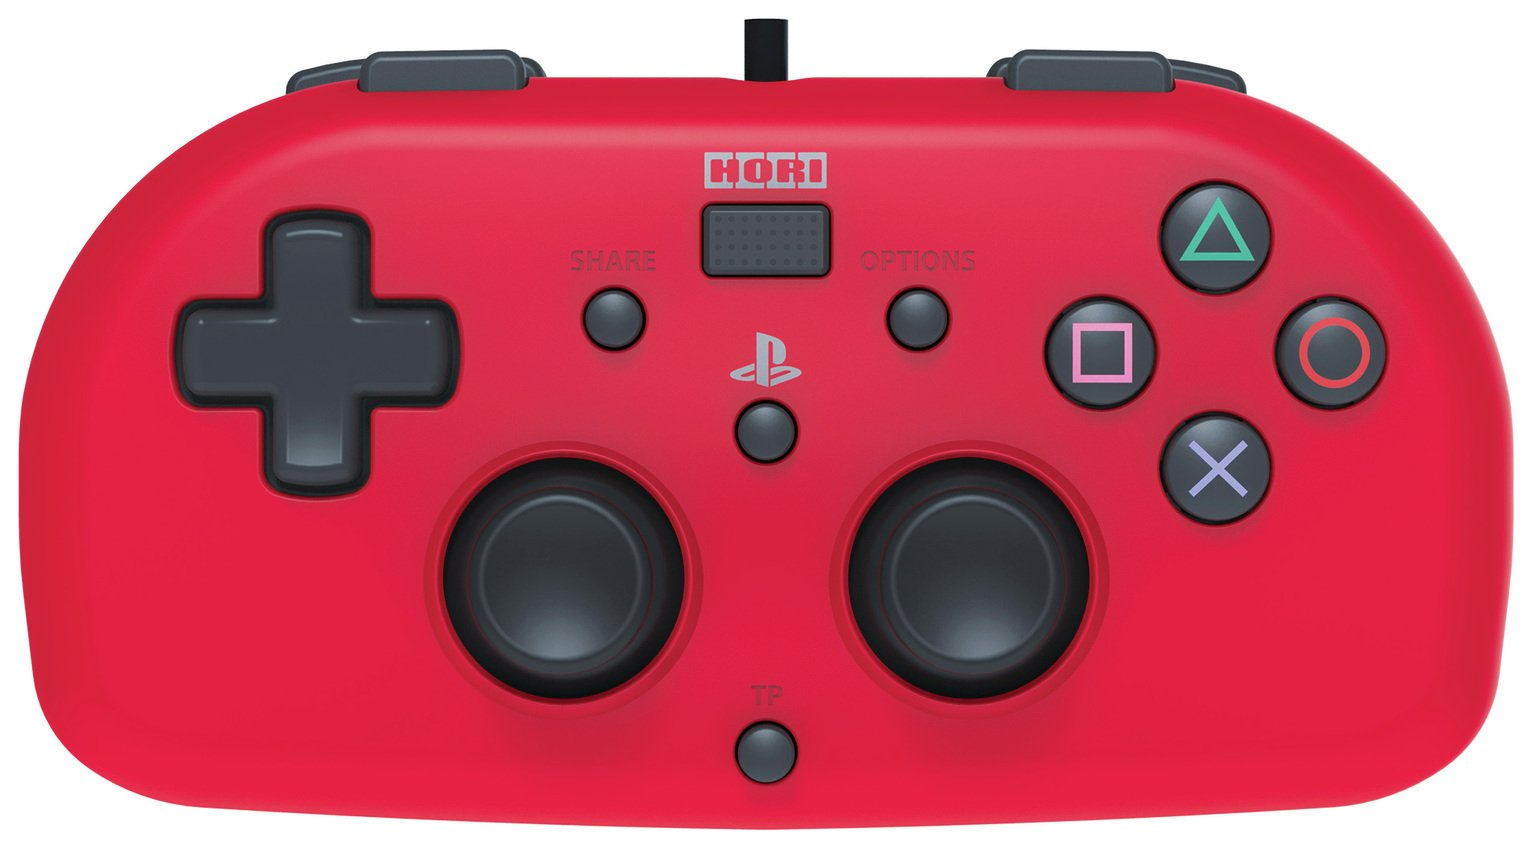 Hori Wired Mini Gamepad PS4 Controller – Red review